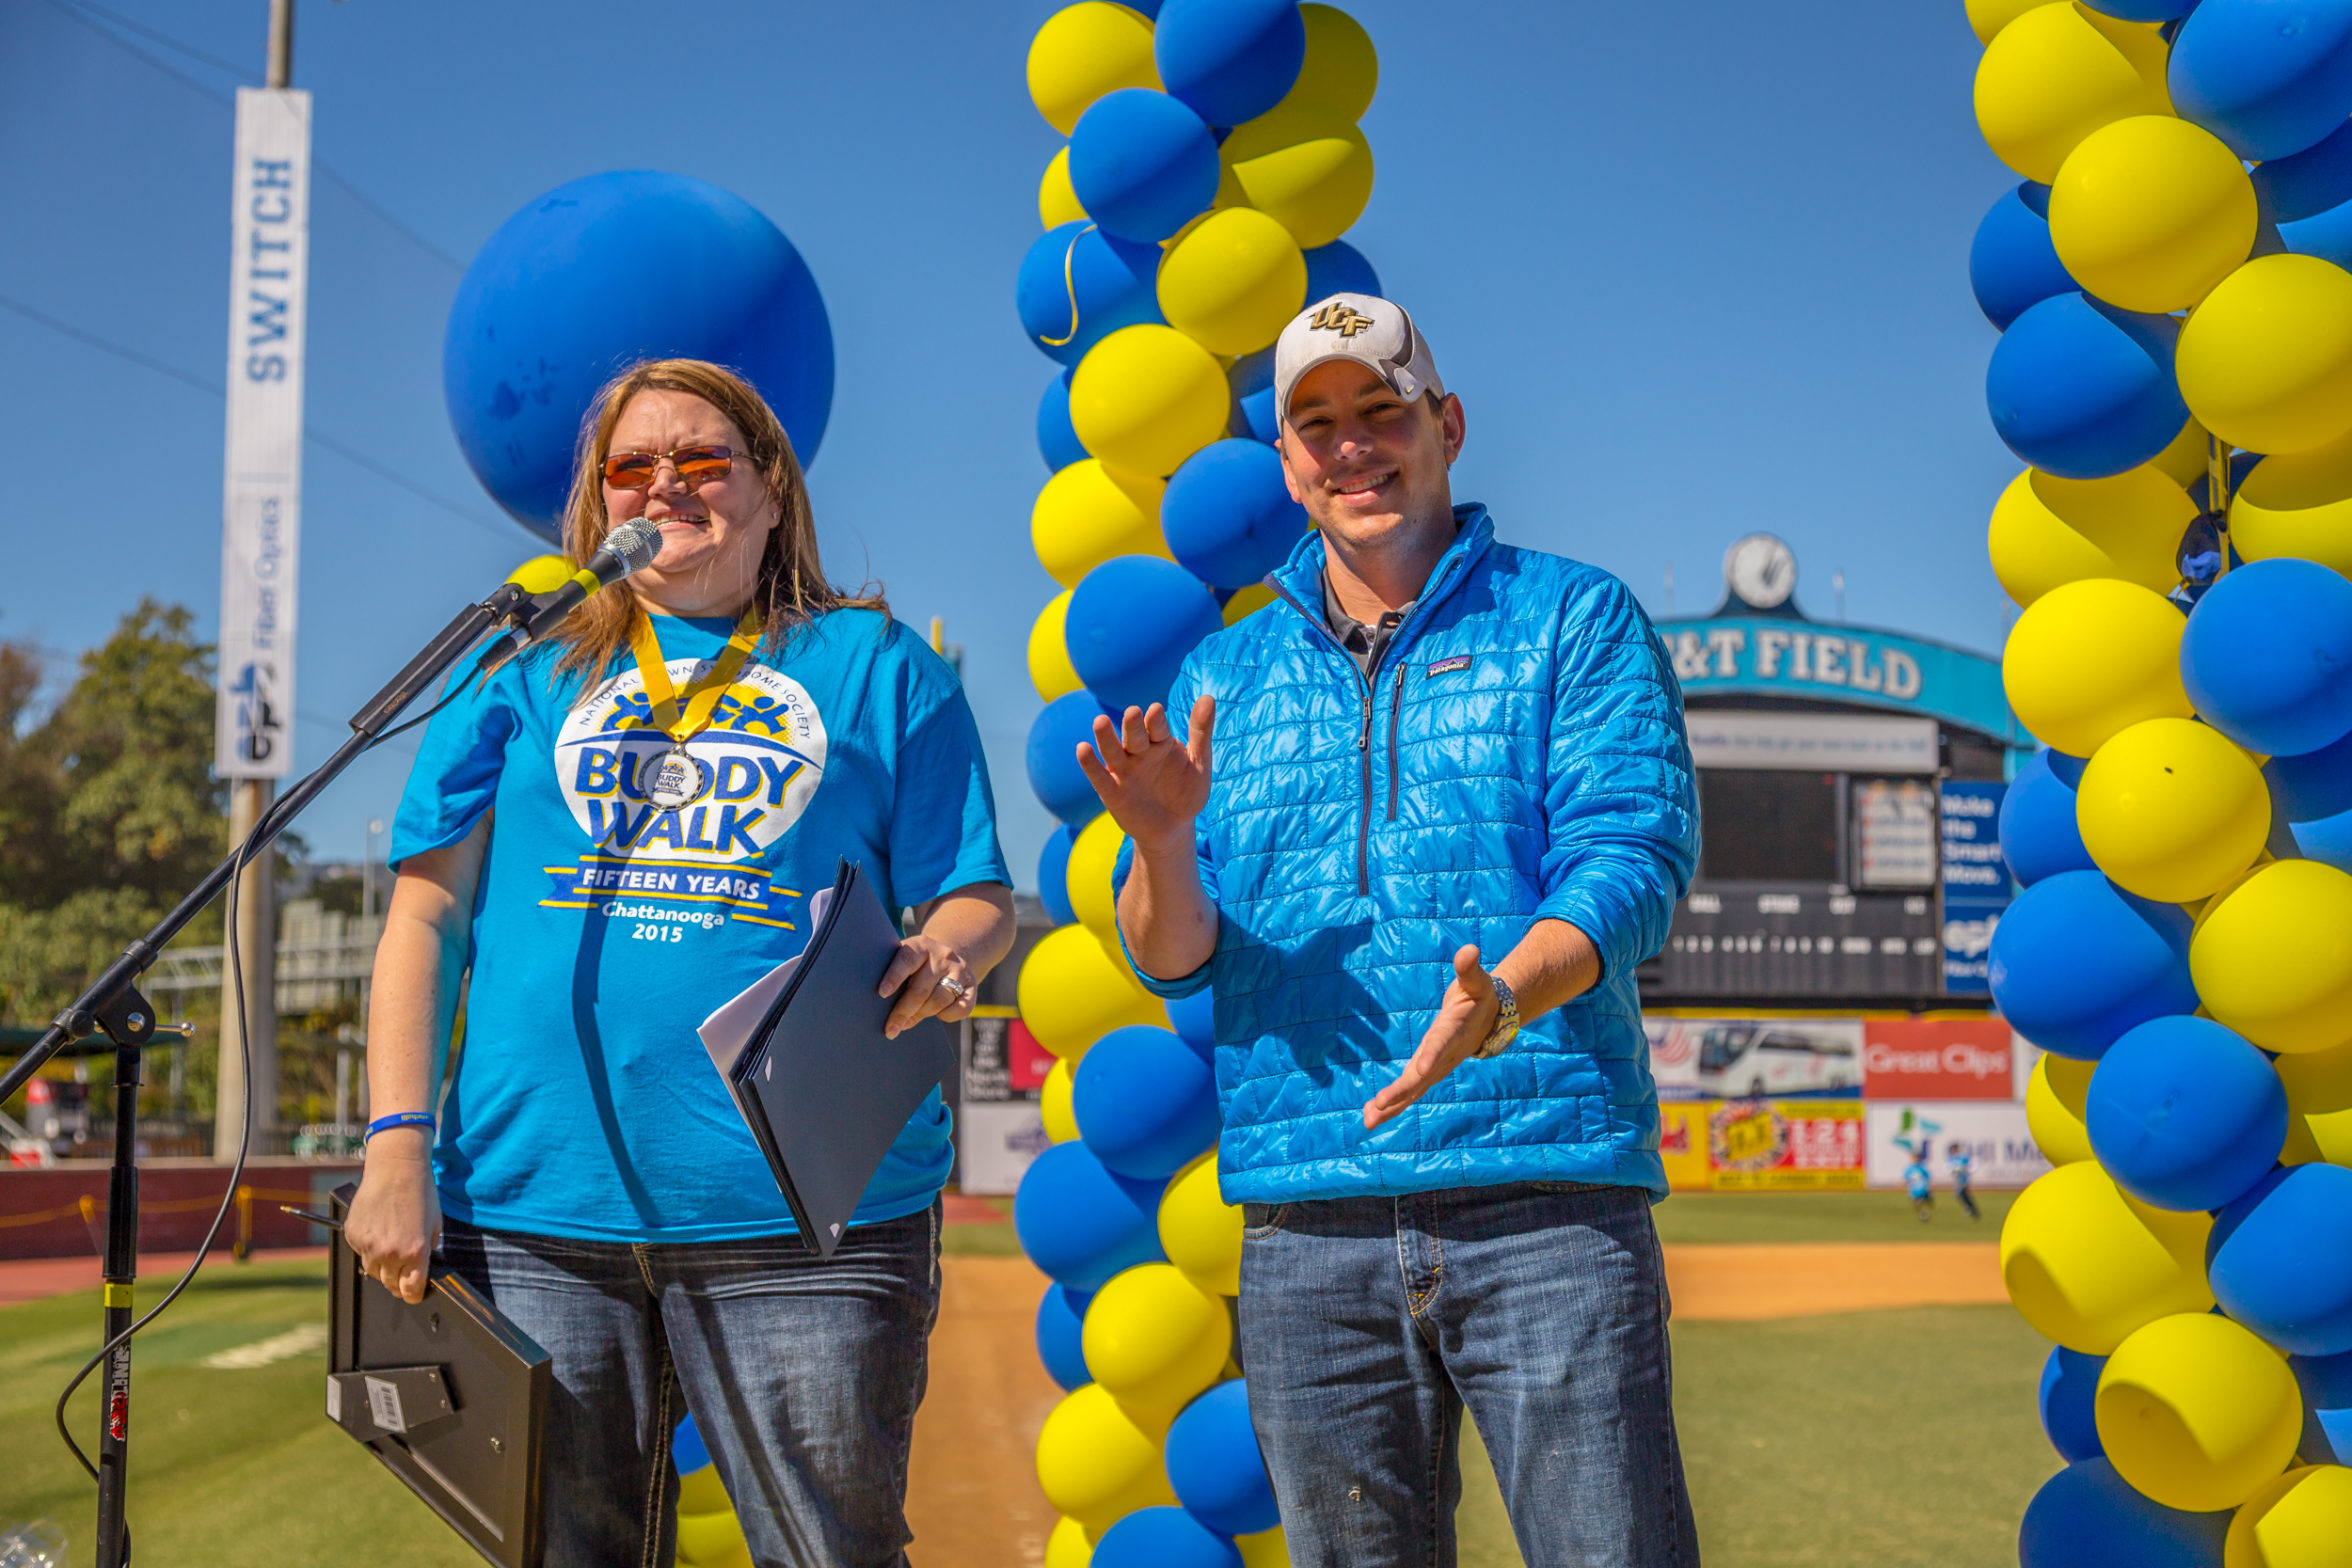 2015 CDSS Buddy Walk-307.jpg